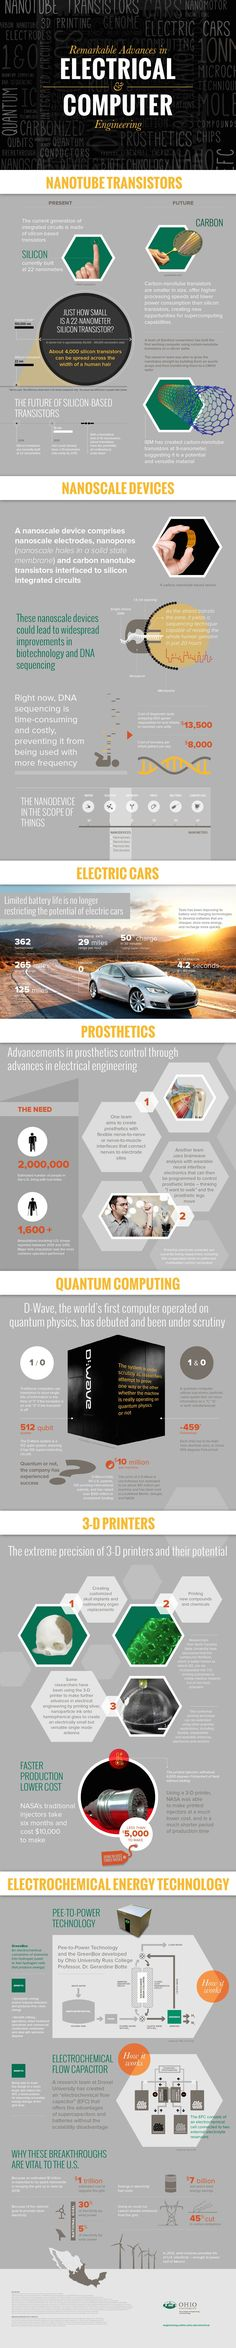 #Infographic: Remarkable Advances in Electrical and Computer #Engineering #nationalengineersweek